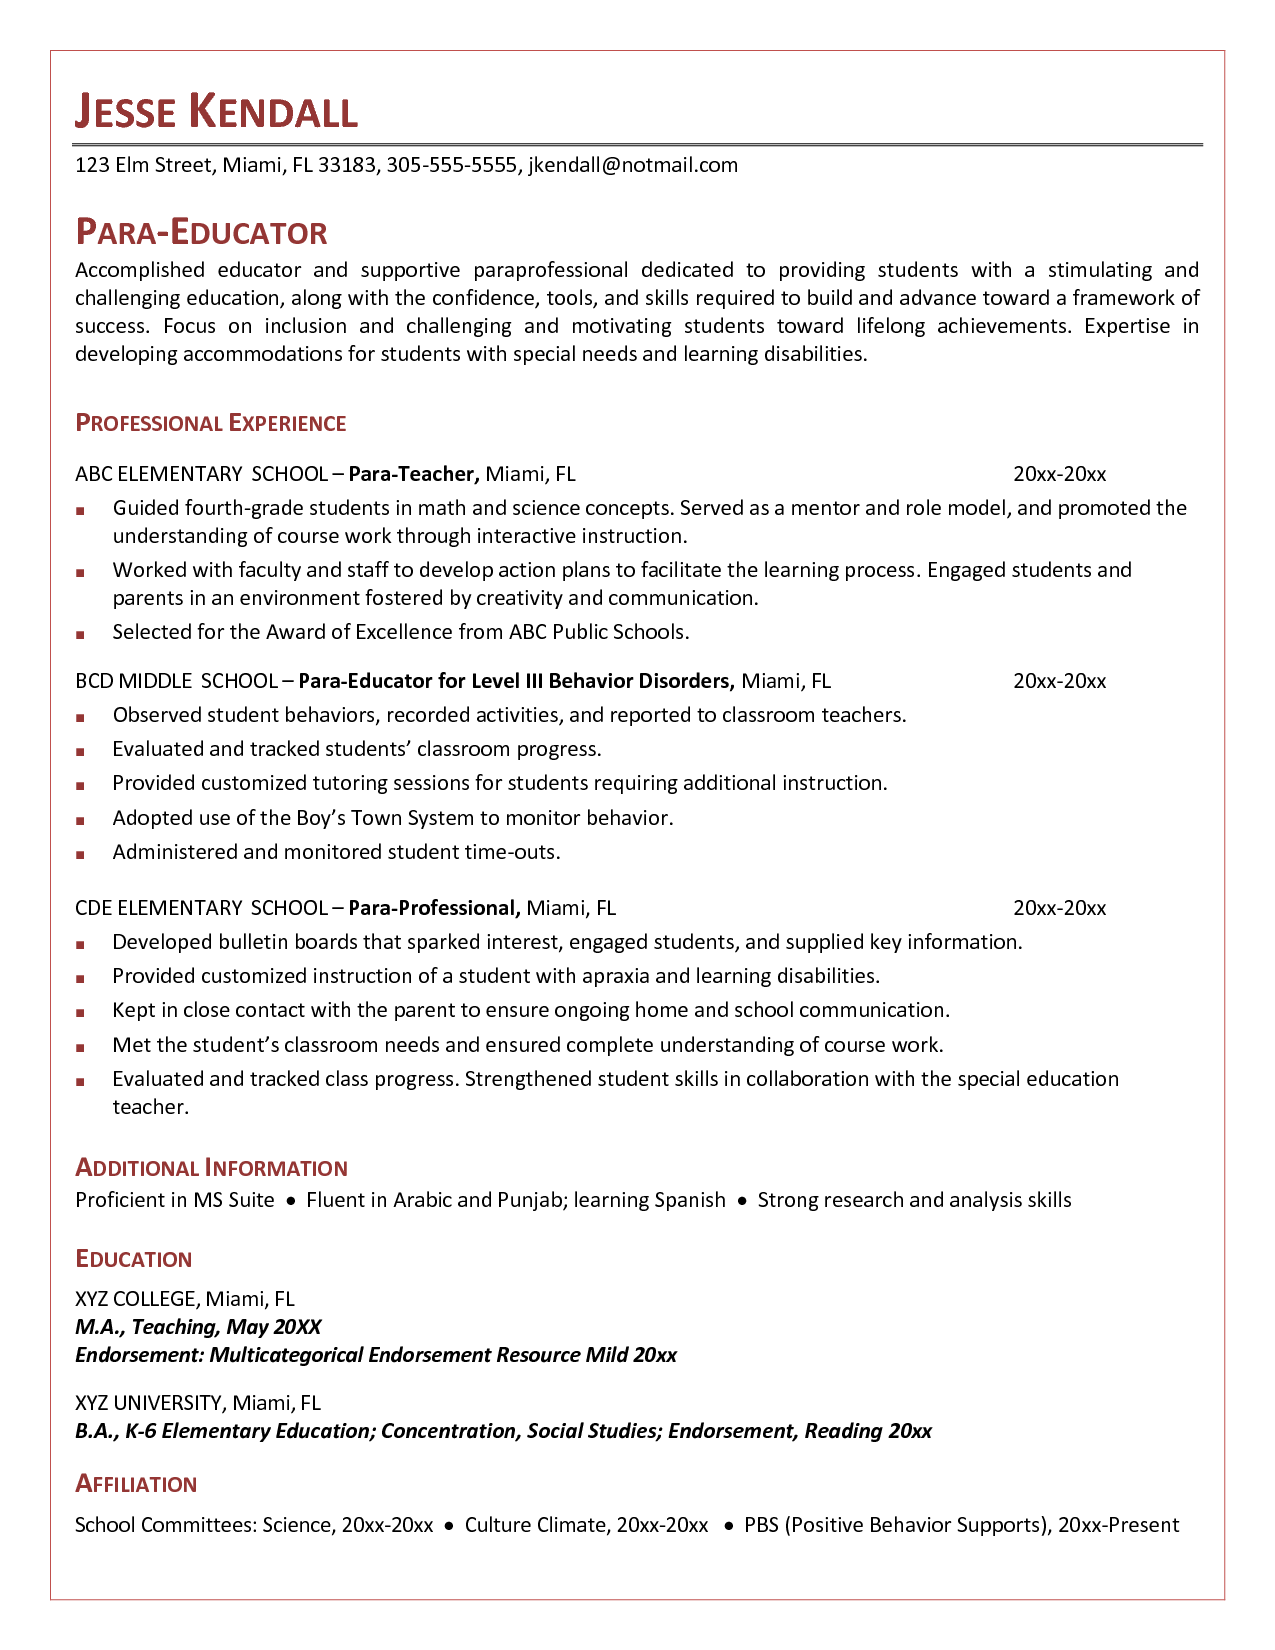 Elementary School Teacher Resume Cover Letter For Paraeducator Example  Httpwwwresumecareer